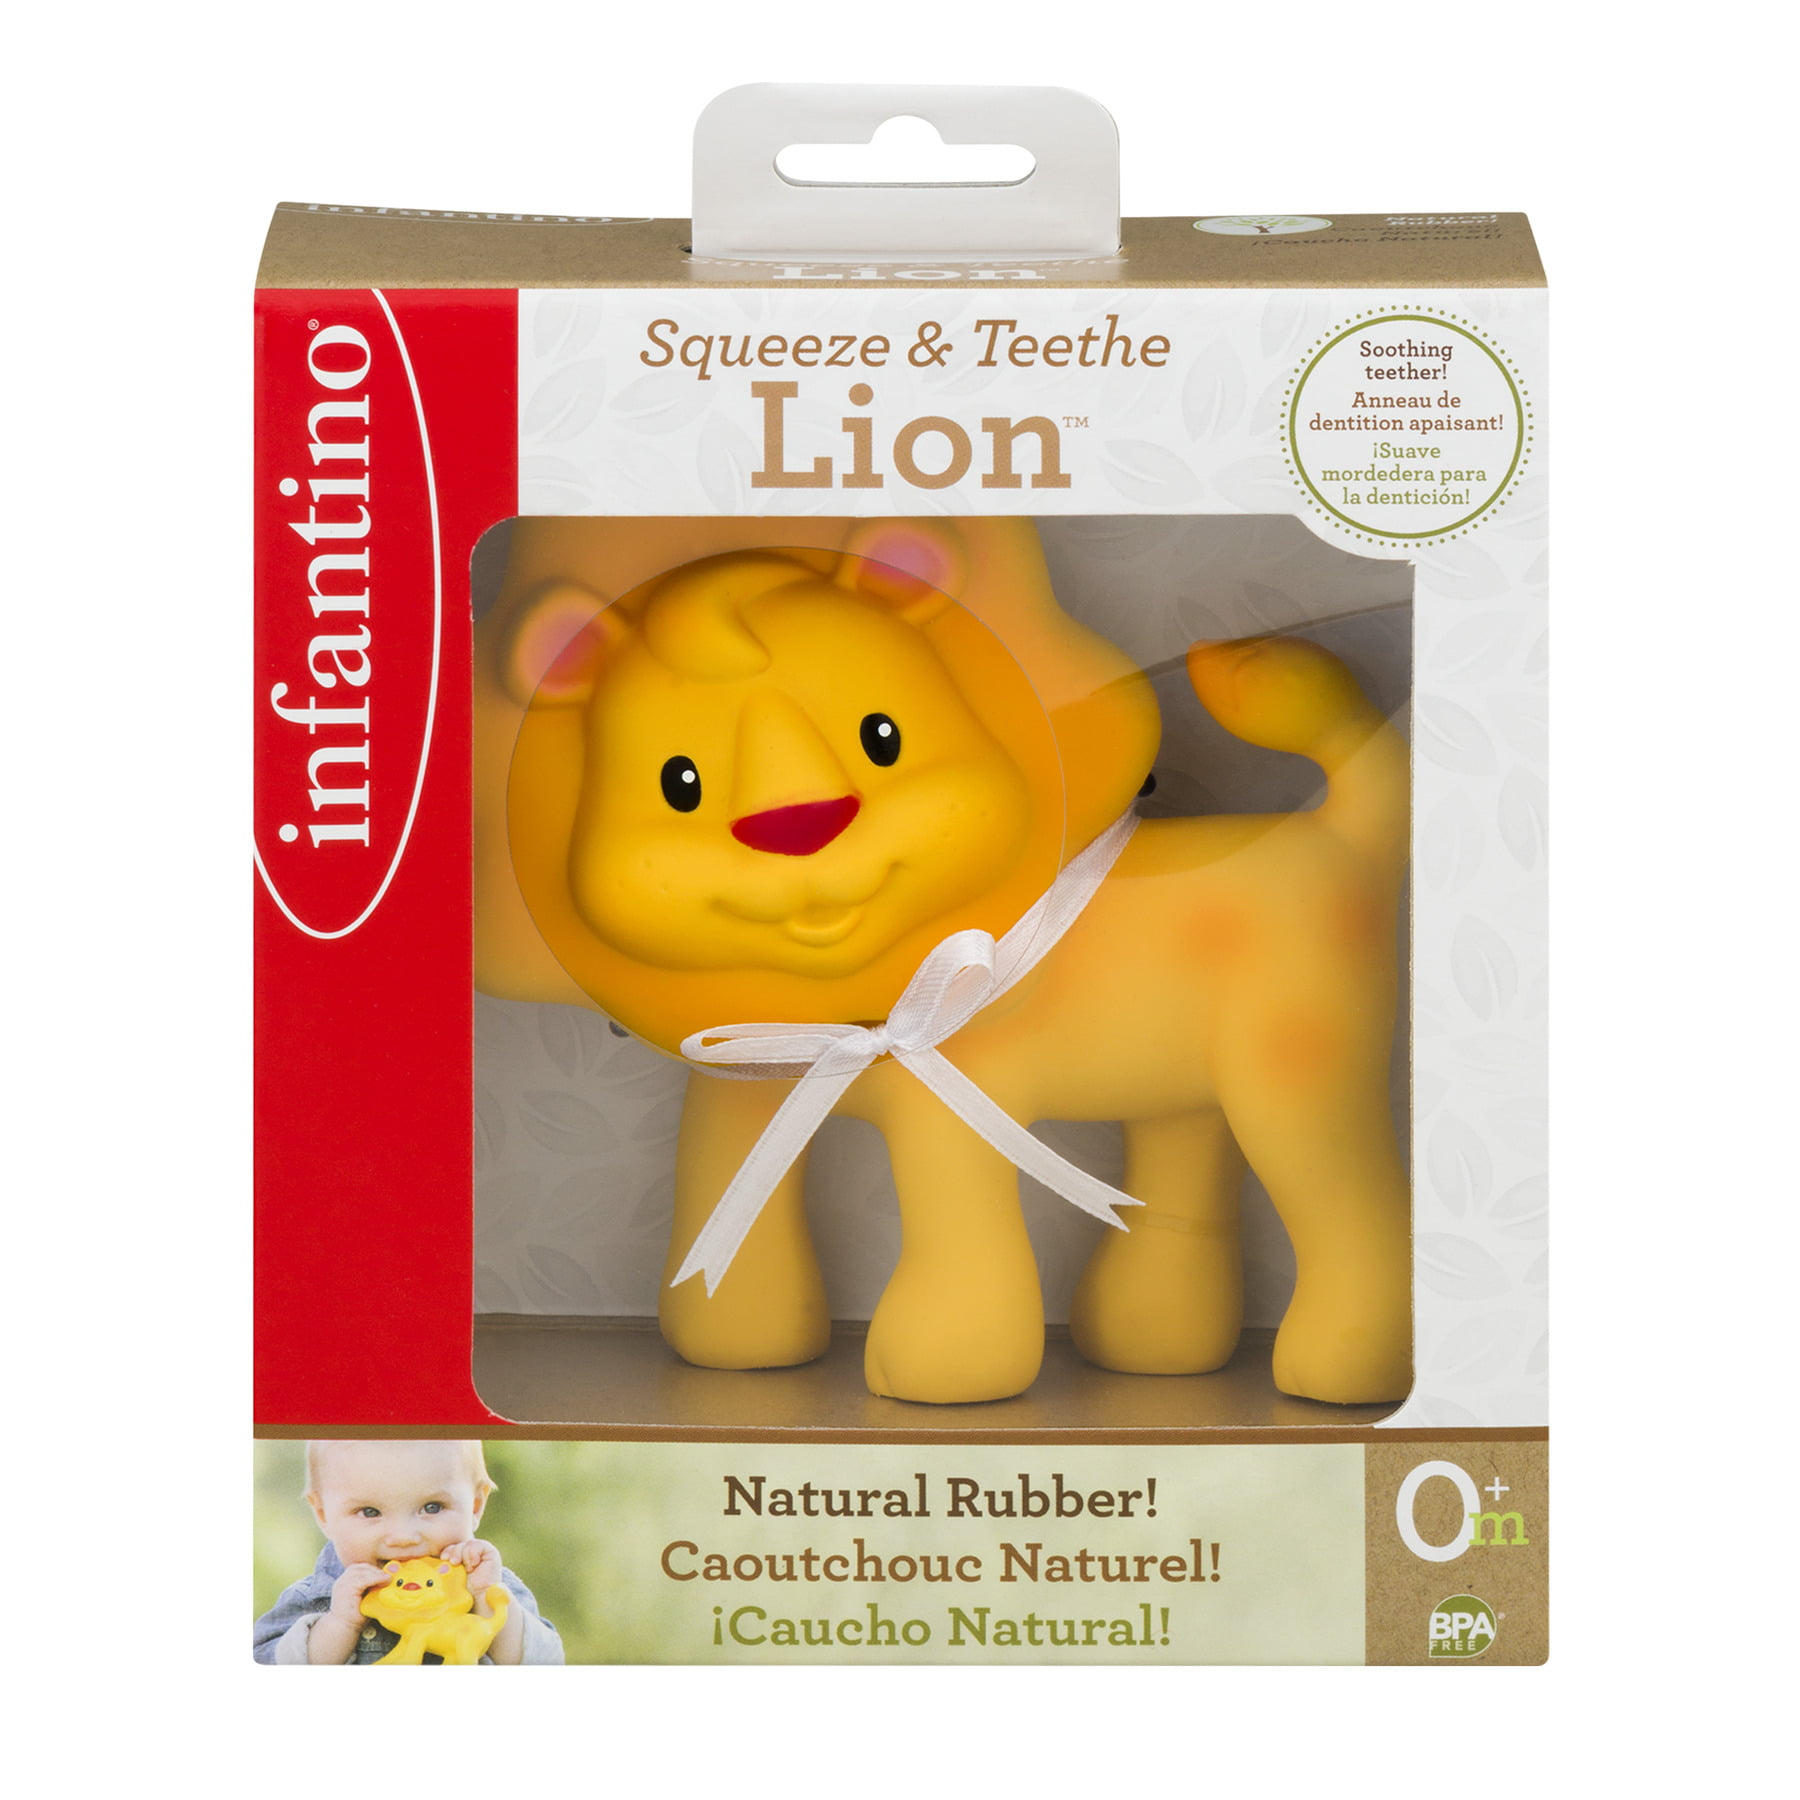 Infantino Squeeze & Teethe Lion 0+m, 1.0 CT by Infantino